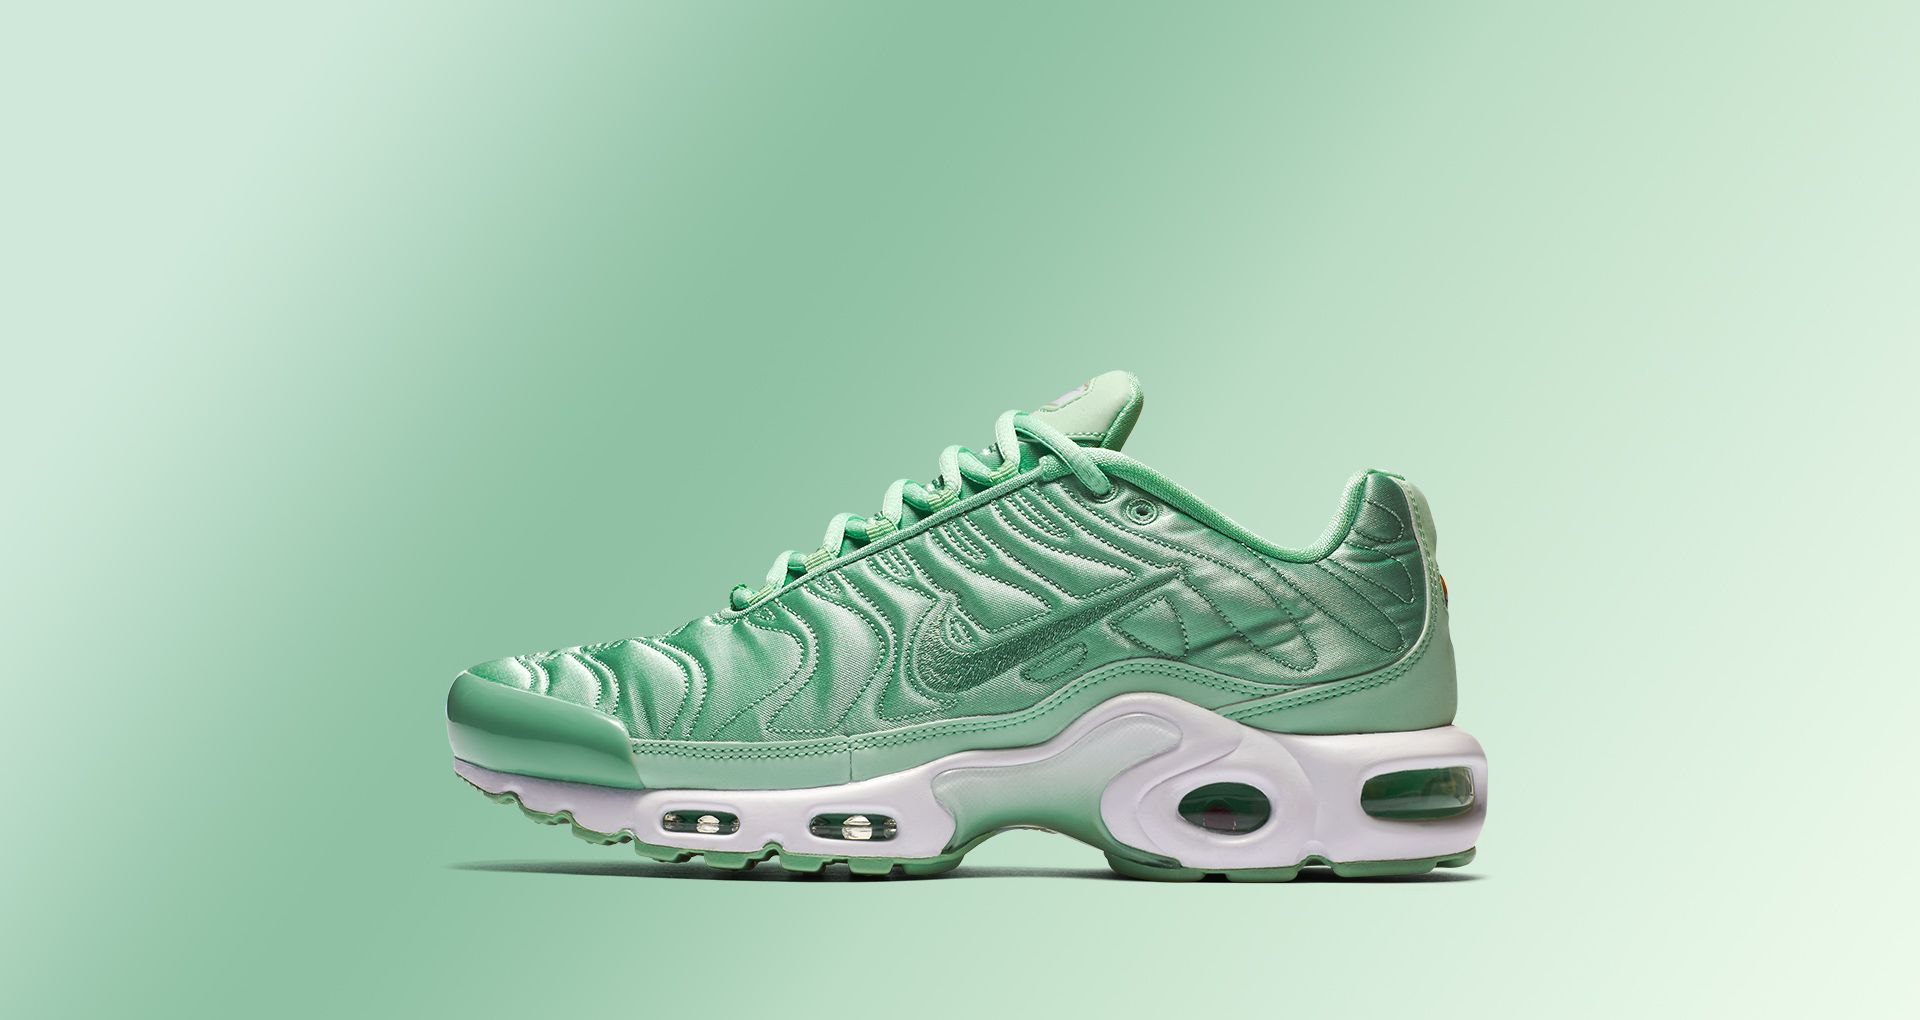 best sneakers 2e734 b2812 Women's Nike Air Max Plus 'Summer Satin' Mint. Nike⁠+ SNKRS